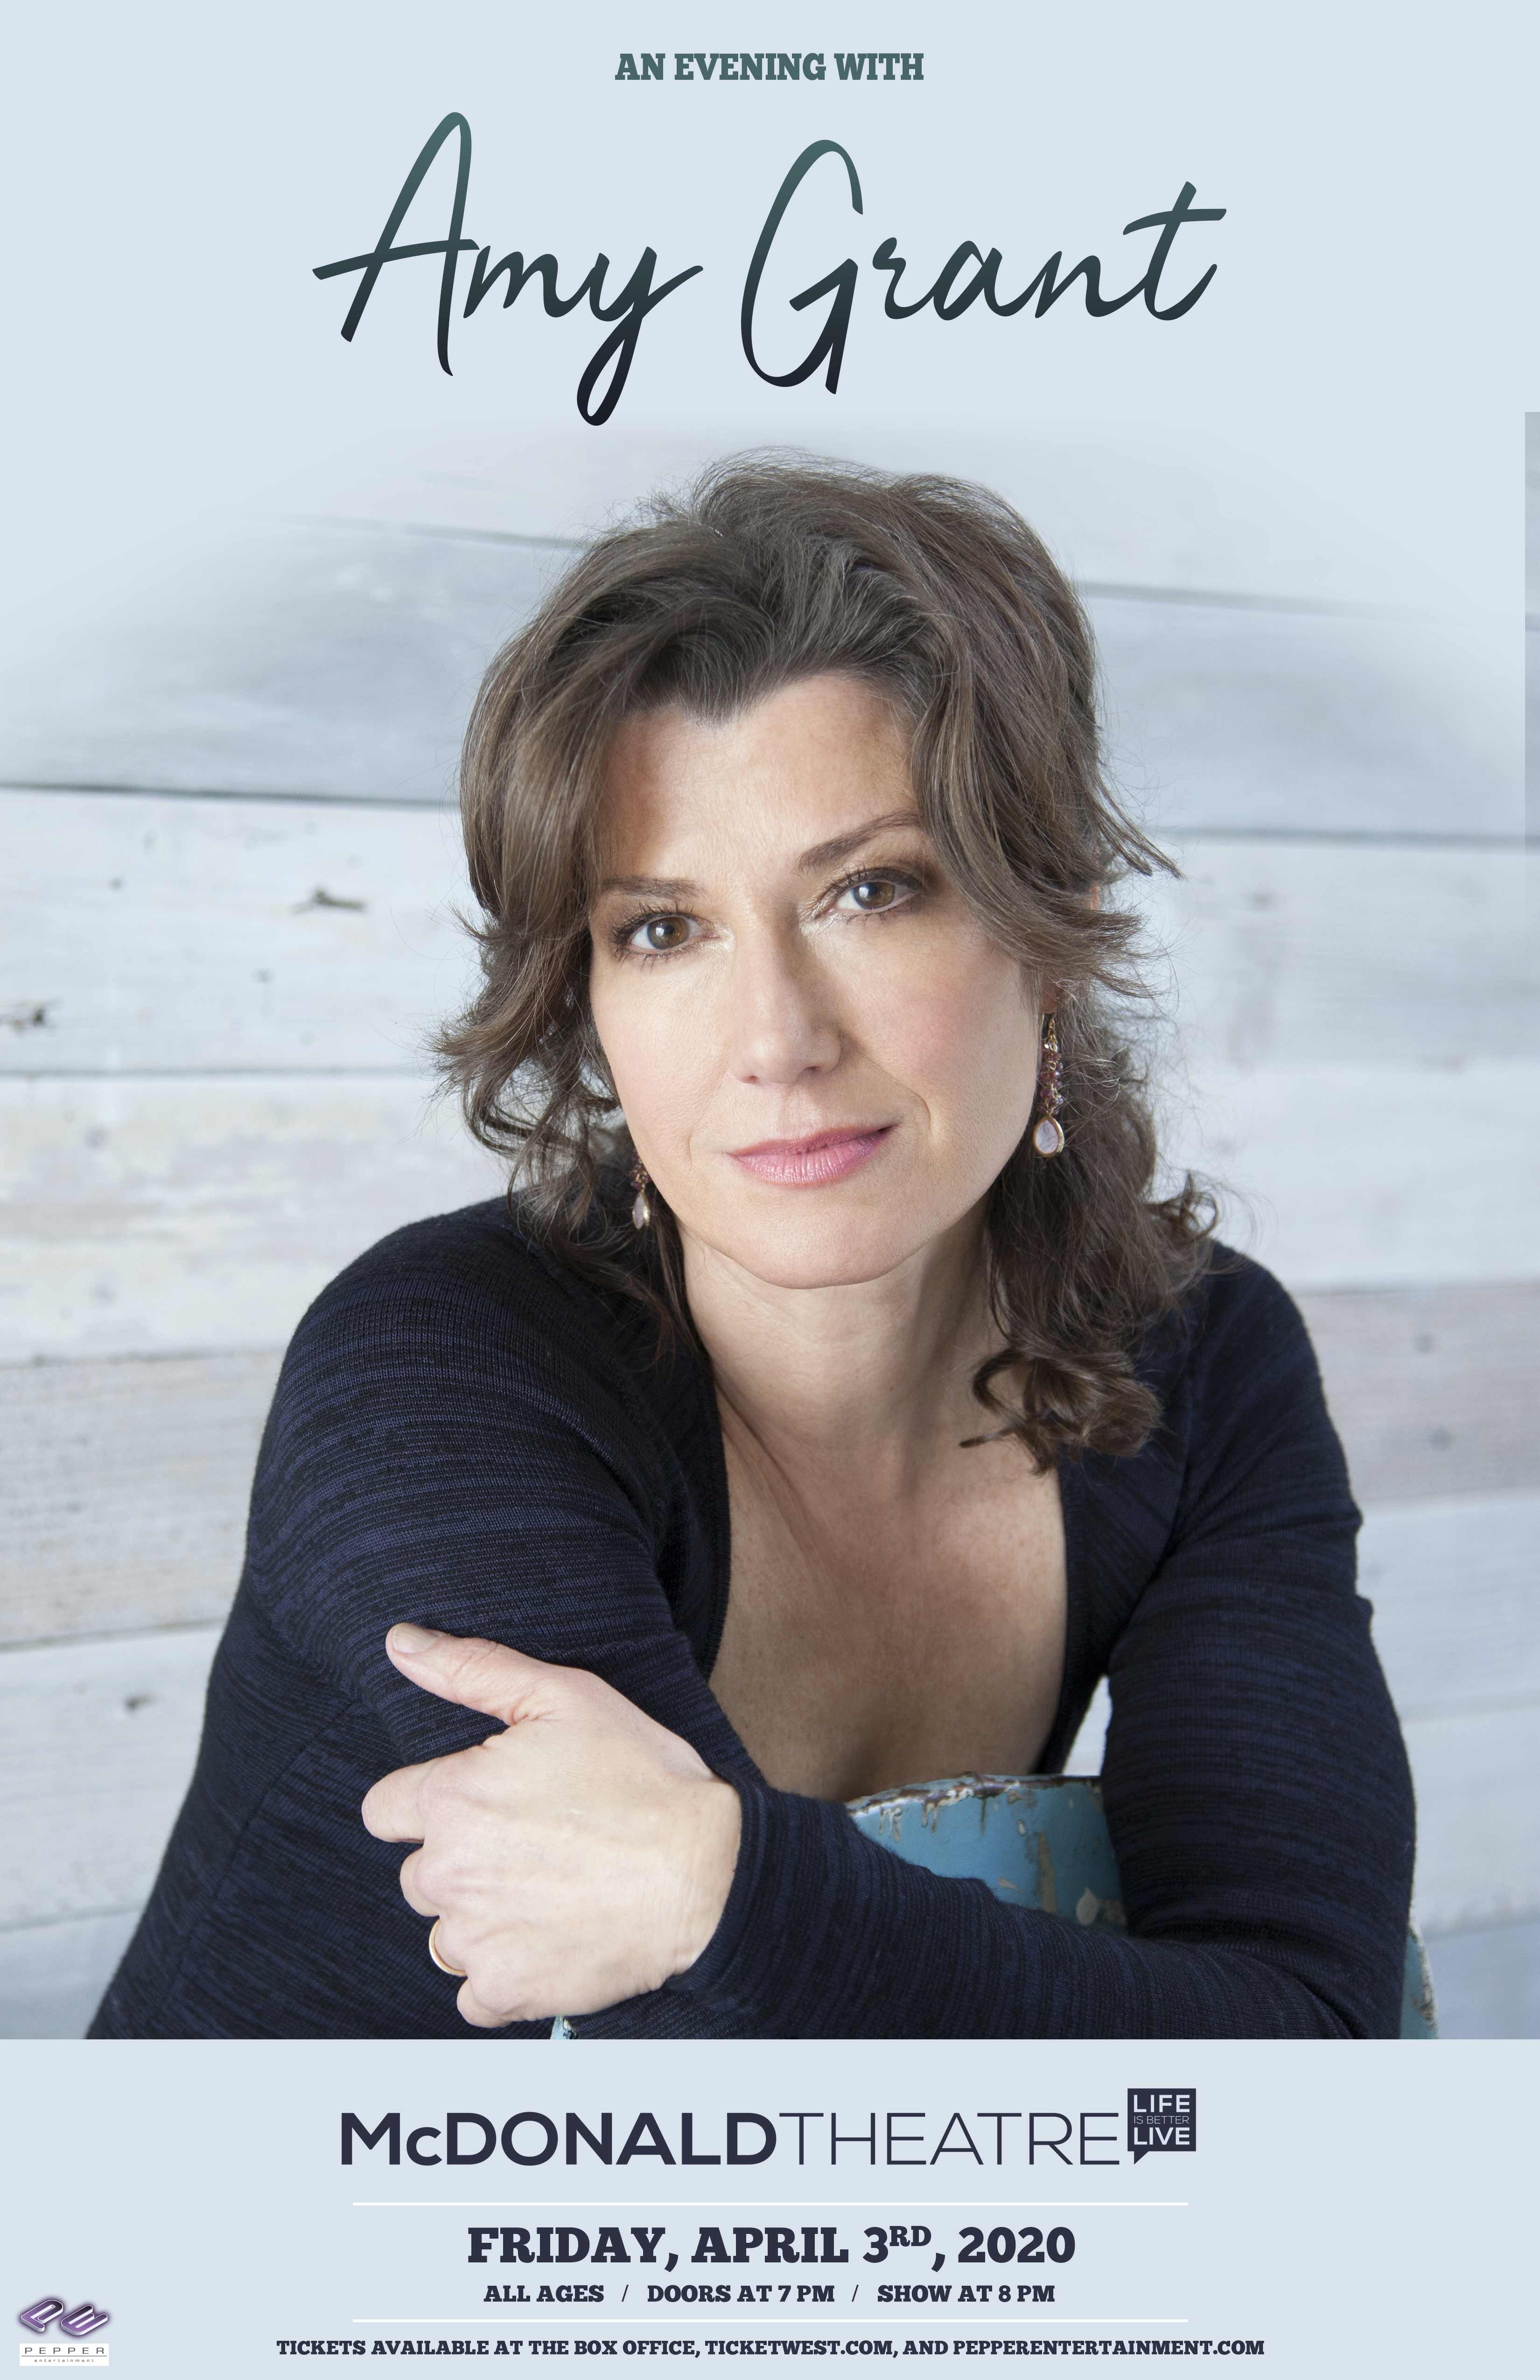 An Evening with Amy Grant April 3rd